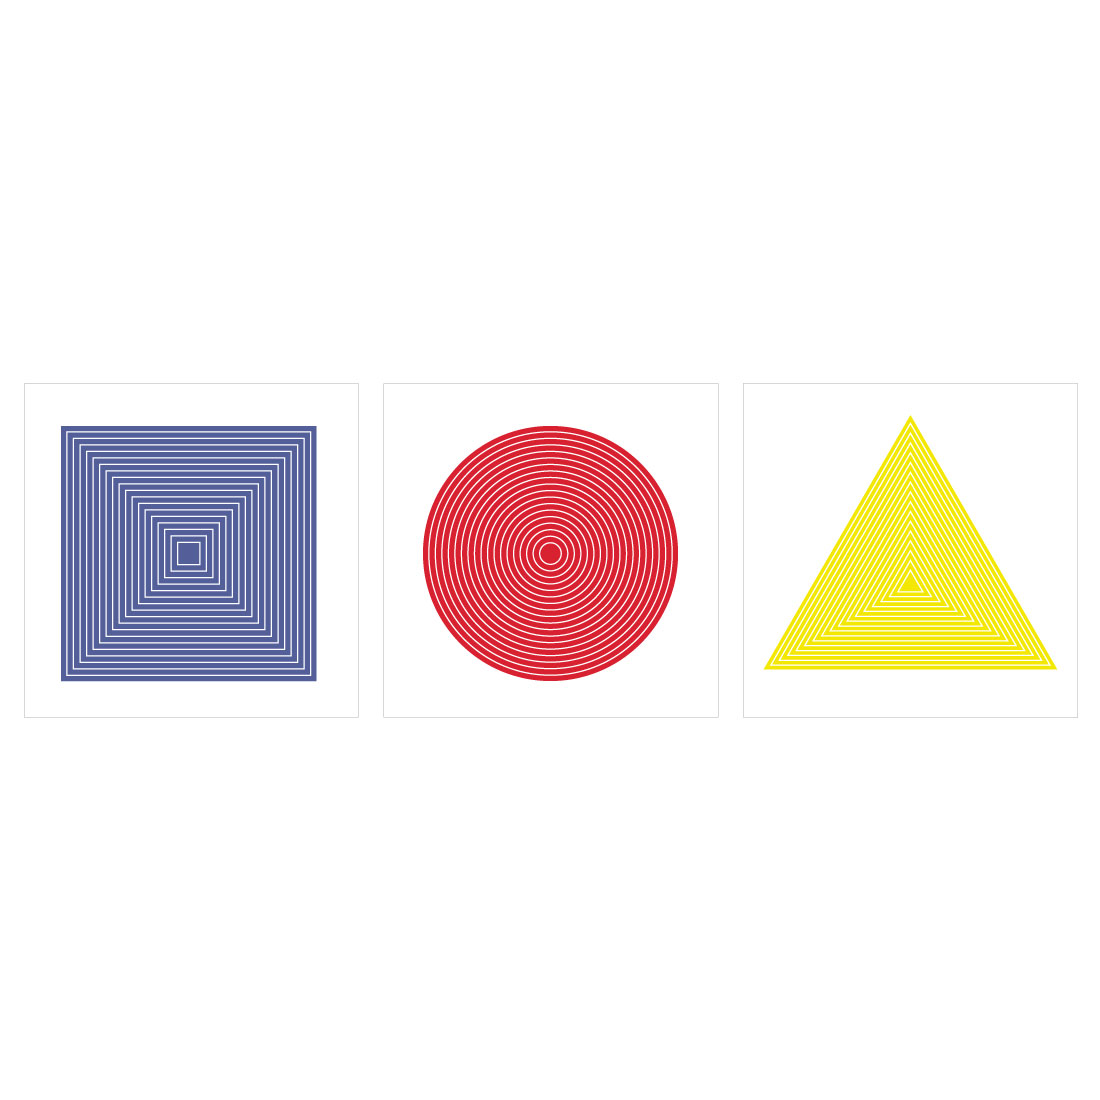 - Primary color geometry by Marco Berrios